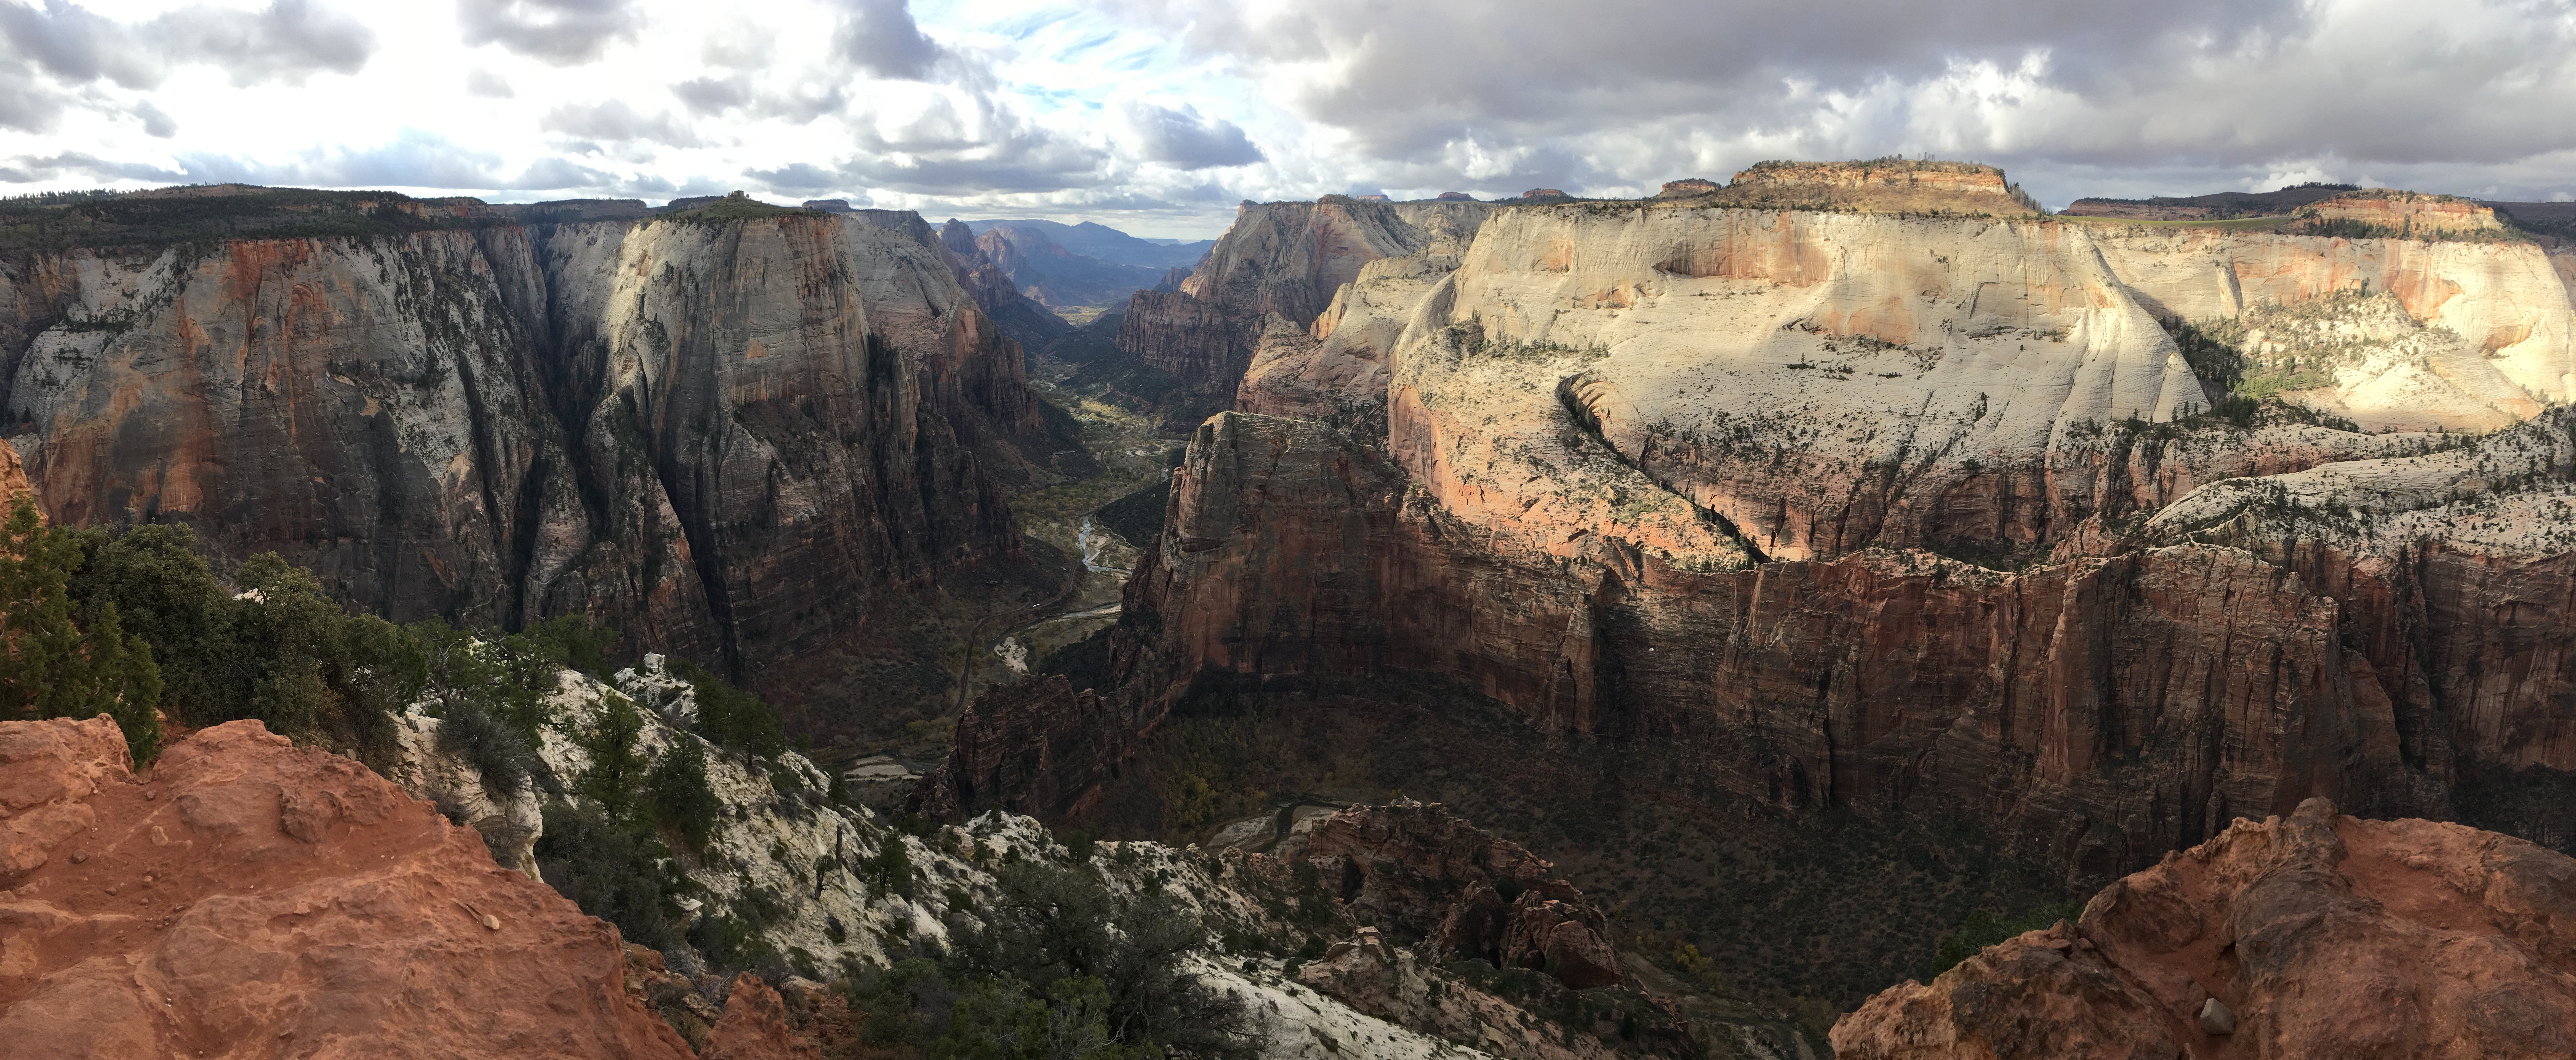 Observation Point, Zion National Park – Pictures, Maps & Tips